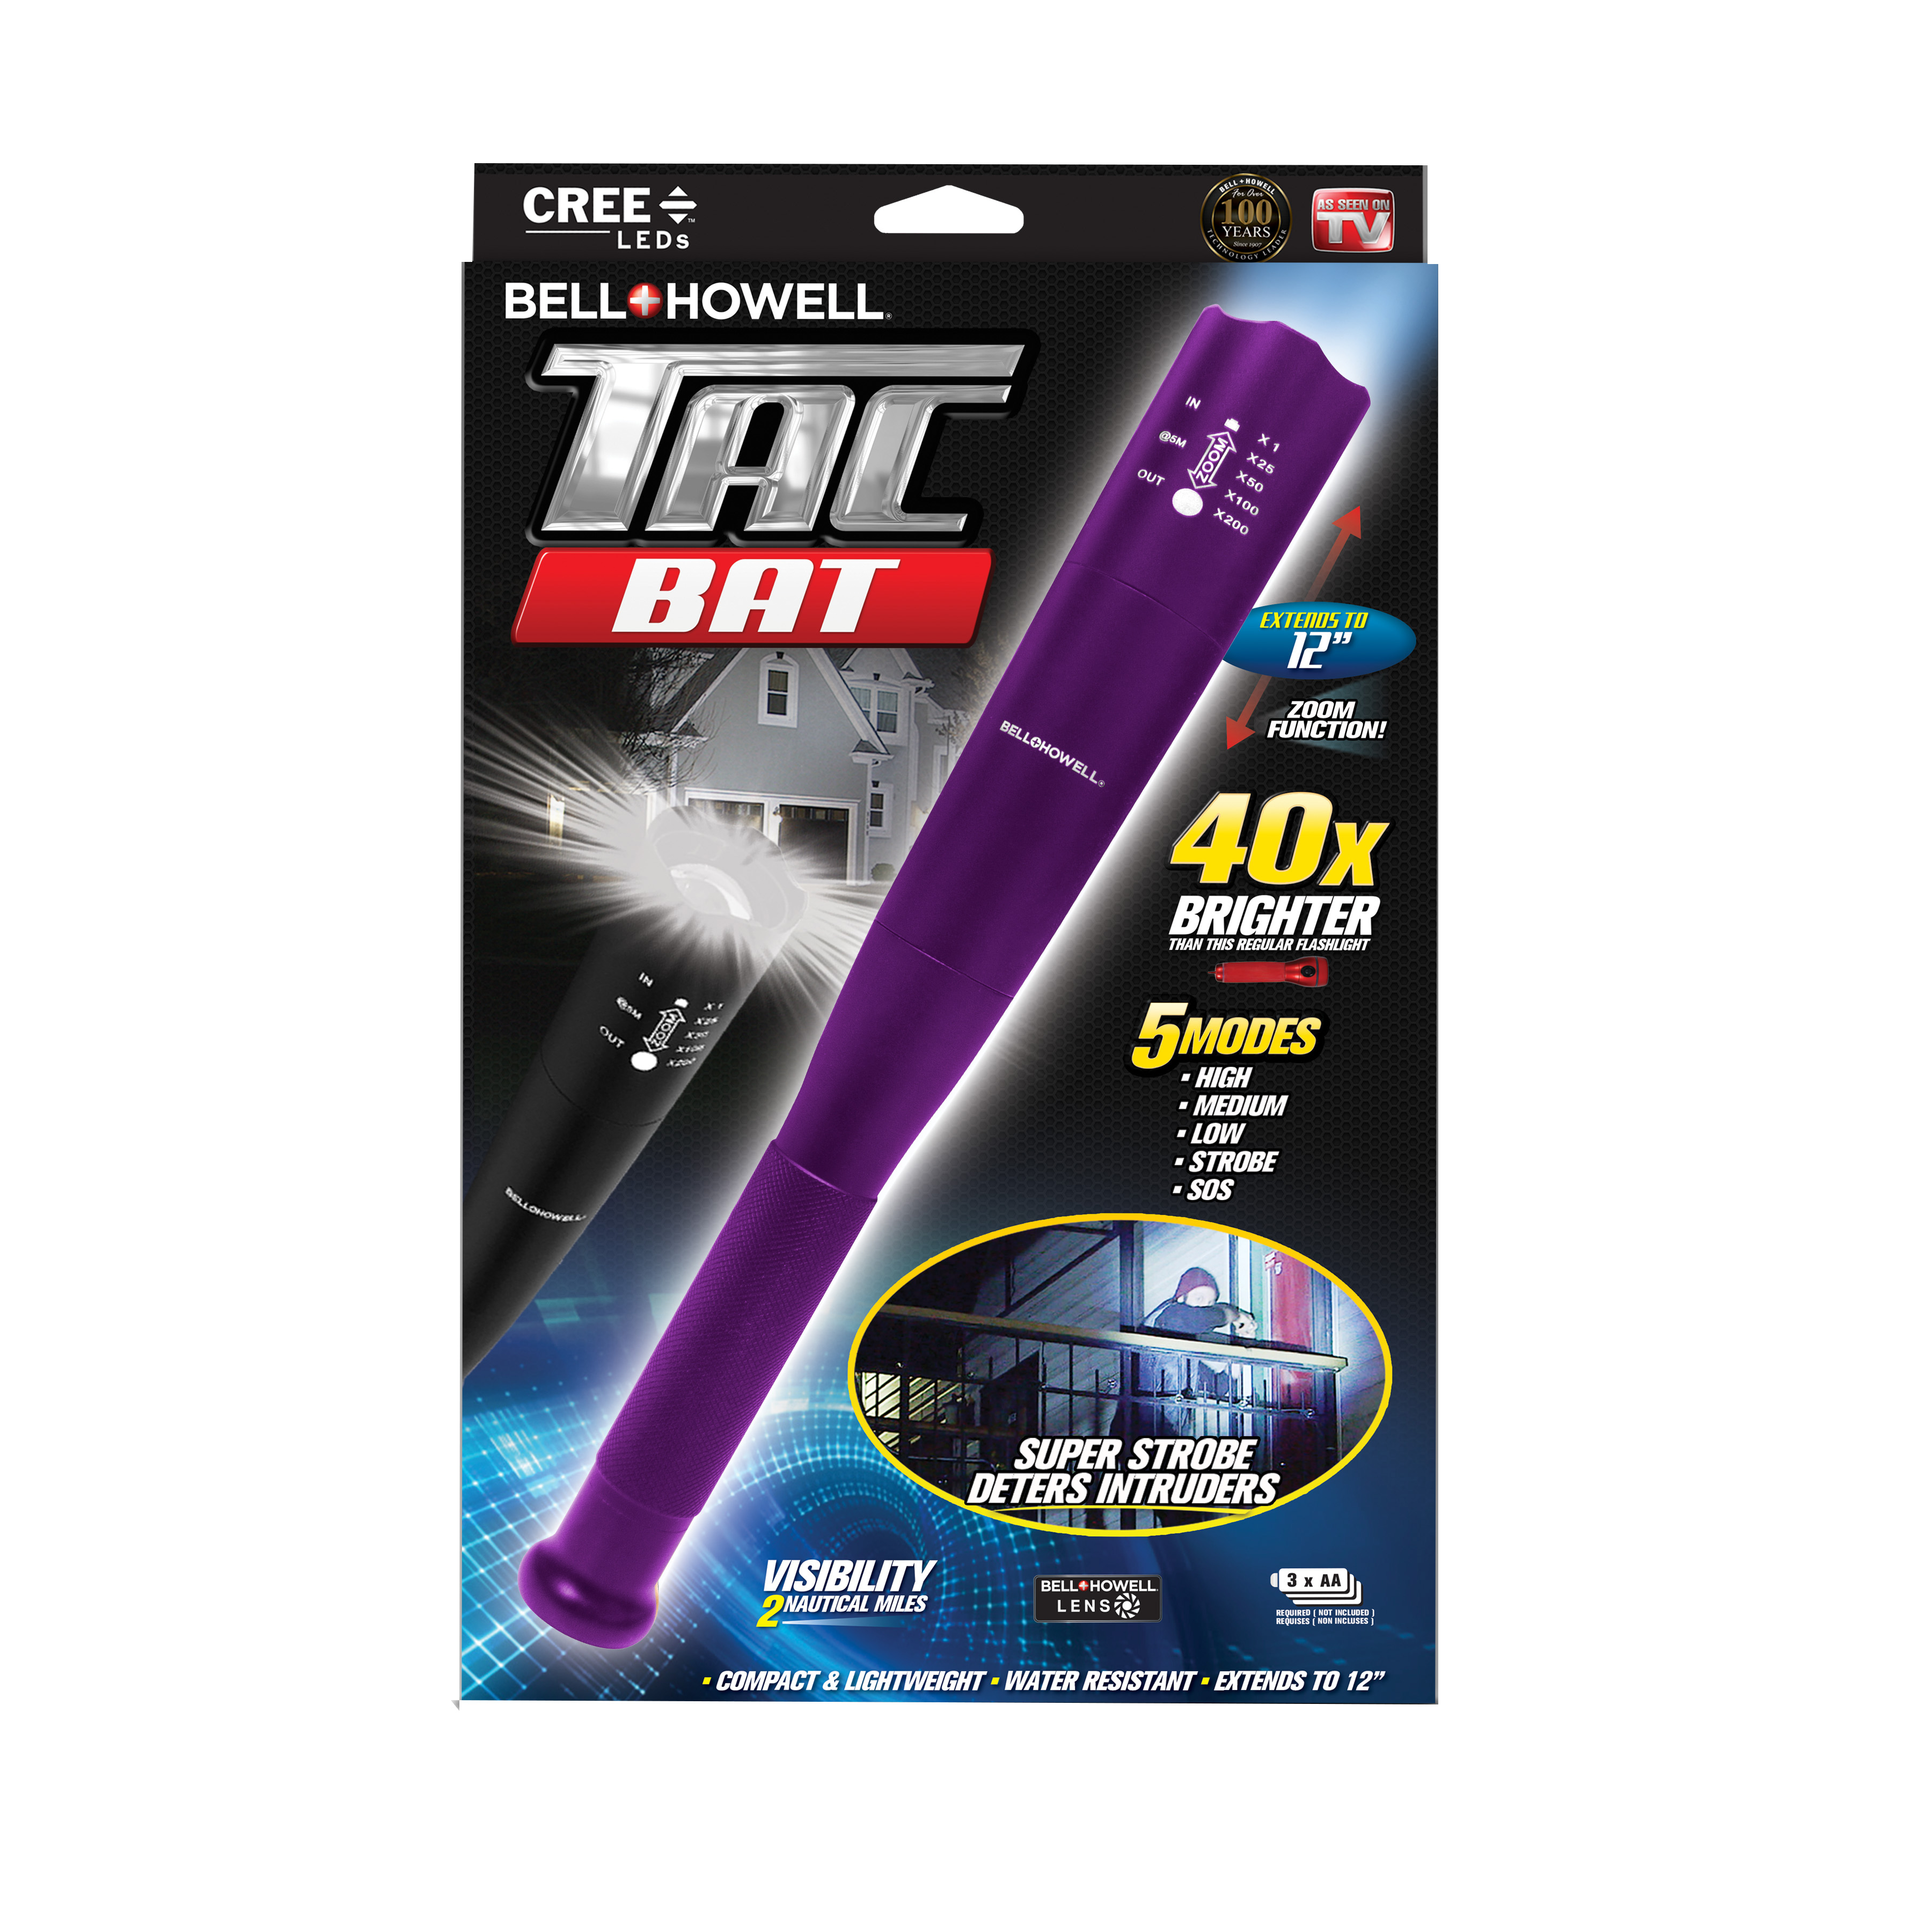 Bell + Howell Tac Bat Military Grade High Performance Tactical Flashlight & Bat, As Seen on TV! Black